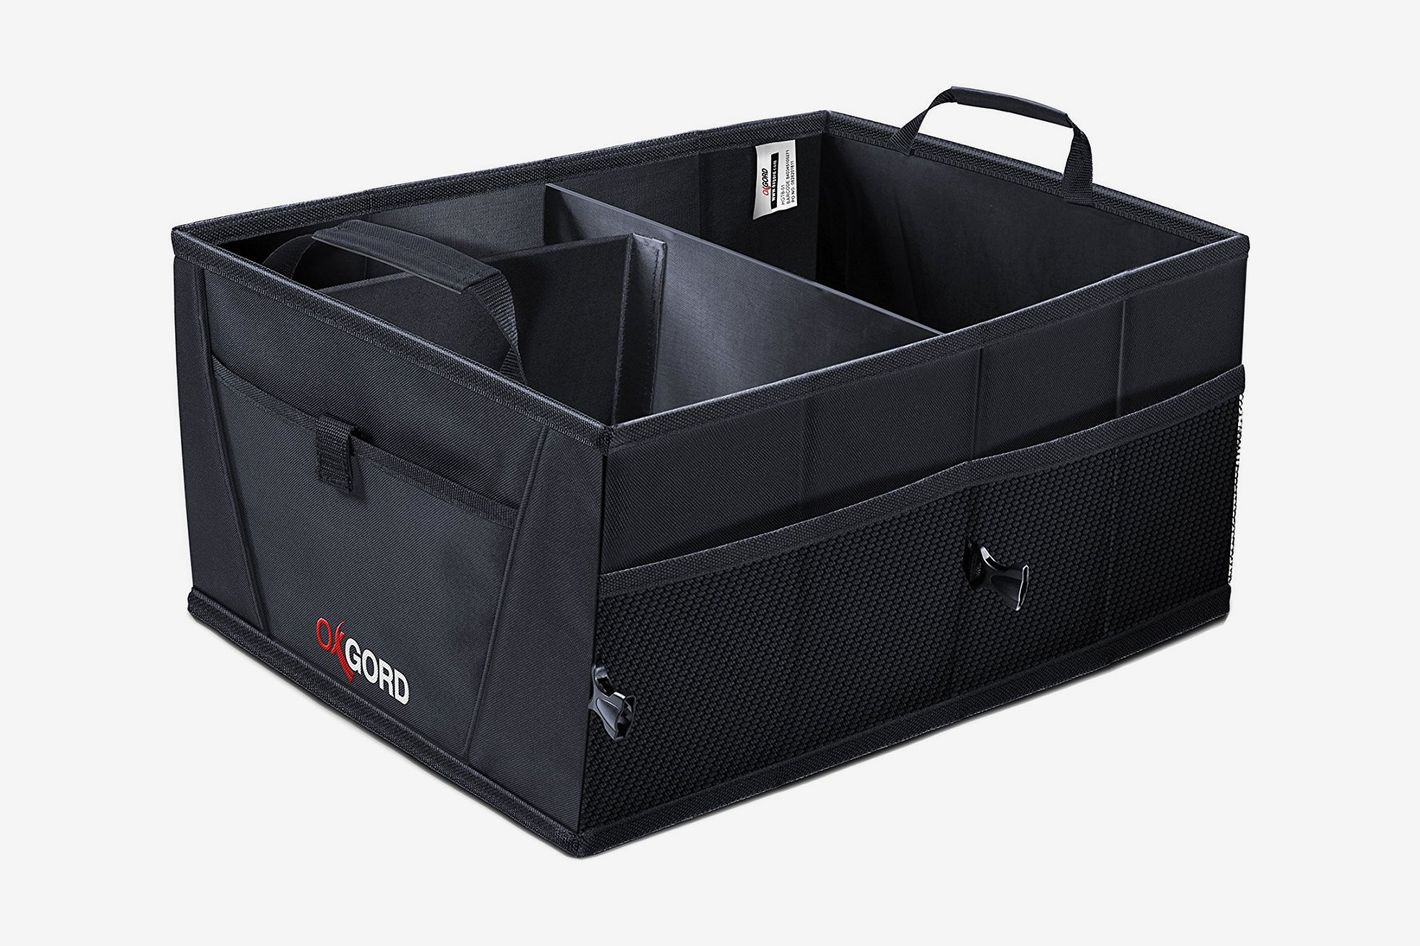 OxGord Auto Trunk Storage Organizer Bin with Pockets — Portable Cargo Carrier Caddy